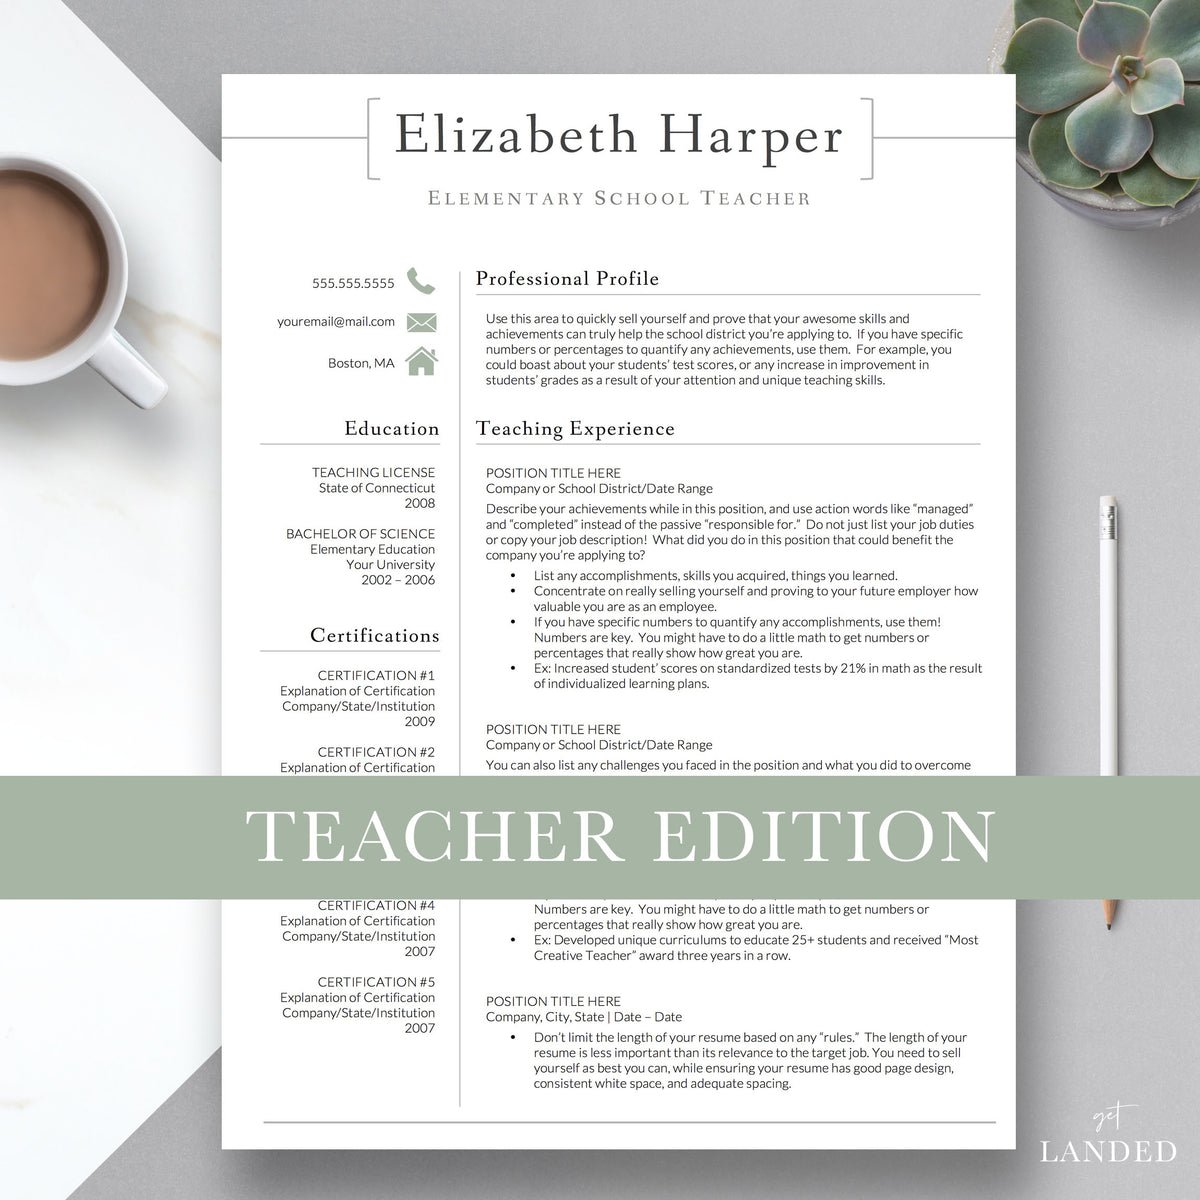 Get Landed: Professional Resume Template Designs & Resume Writing Tips